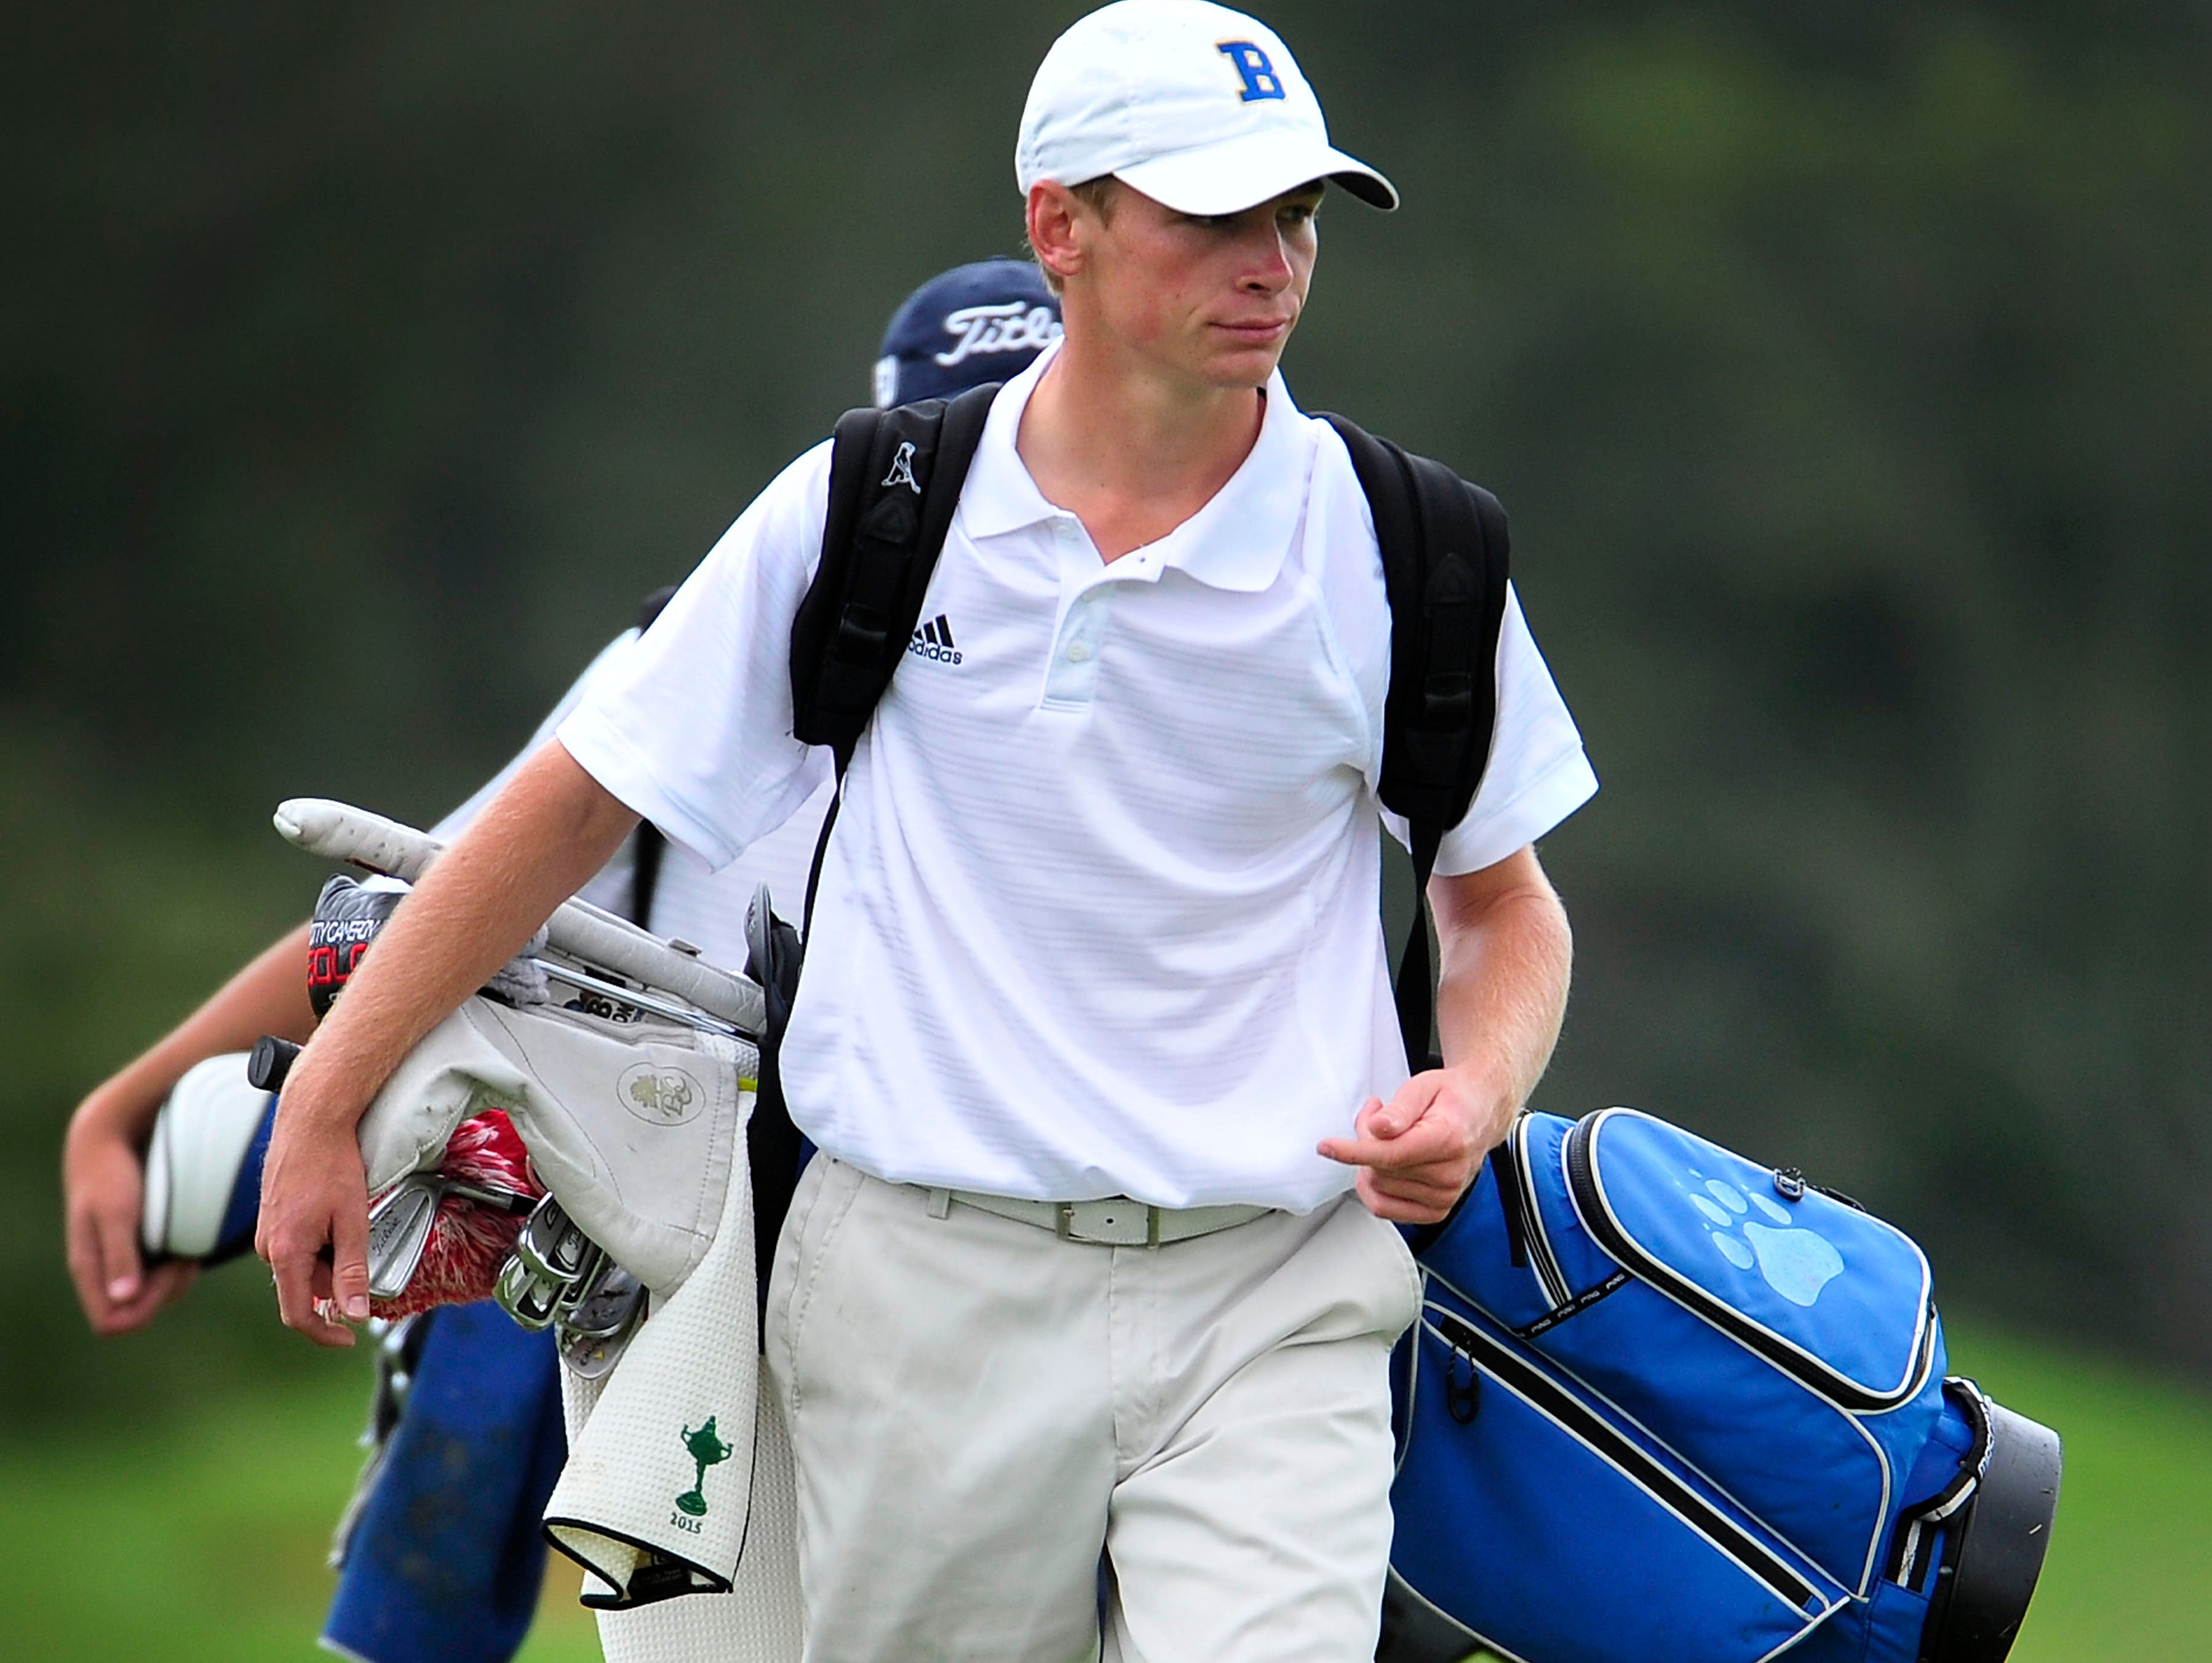 Brentwood's Trevor Johnson walks to the eighth green during the Class AAA Golf Tournament at WillowBrook Golf Club in Manchester on Sept. 30, 2015.